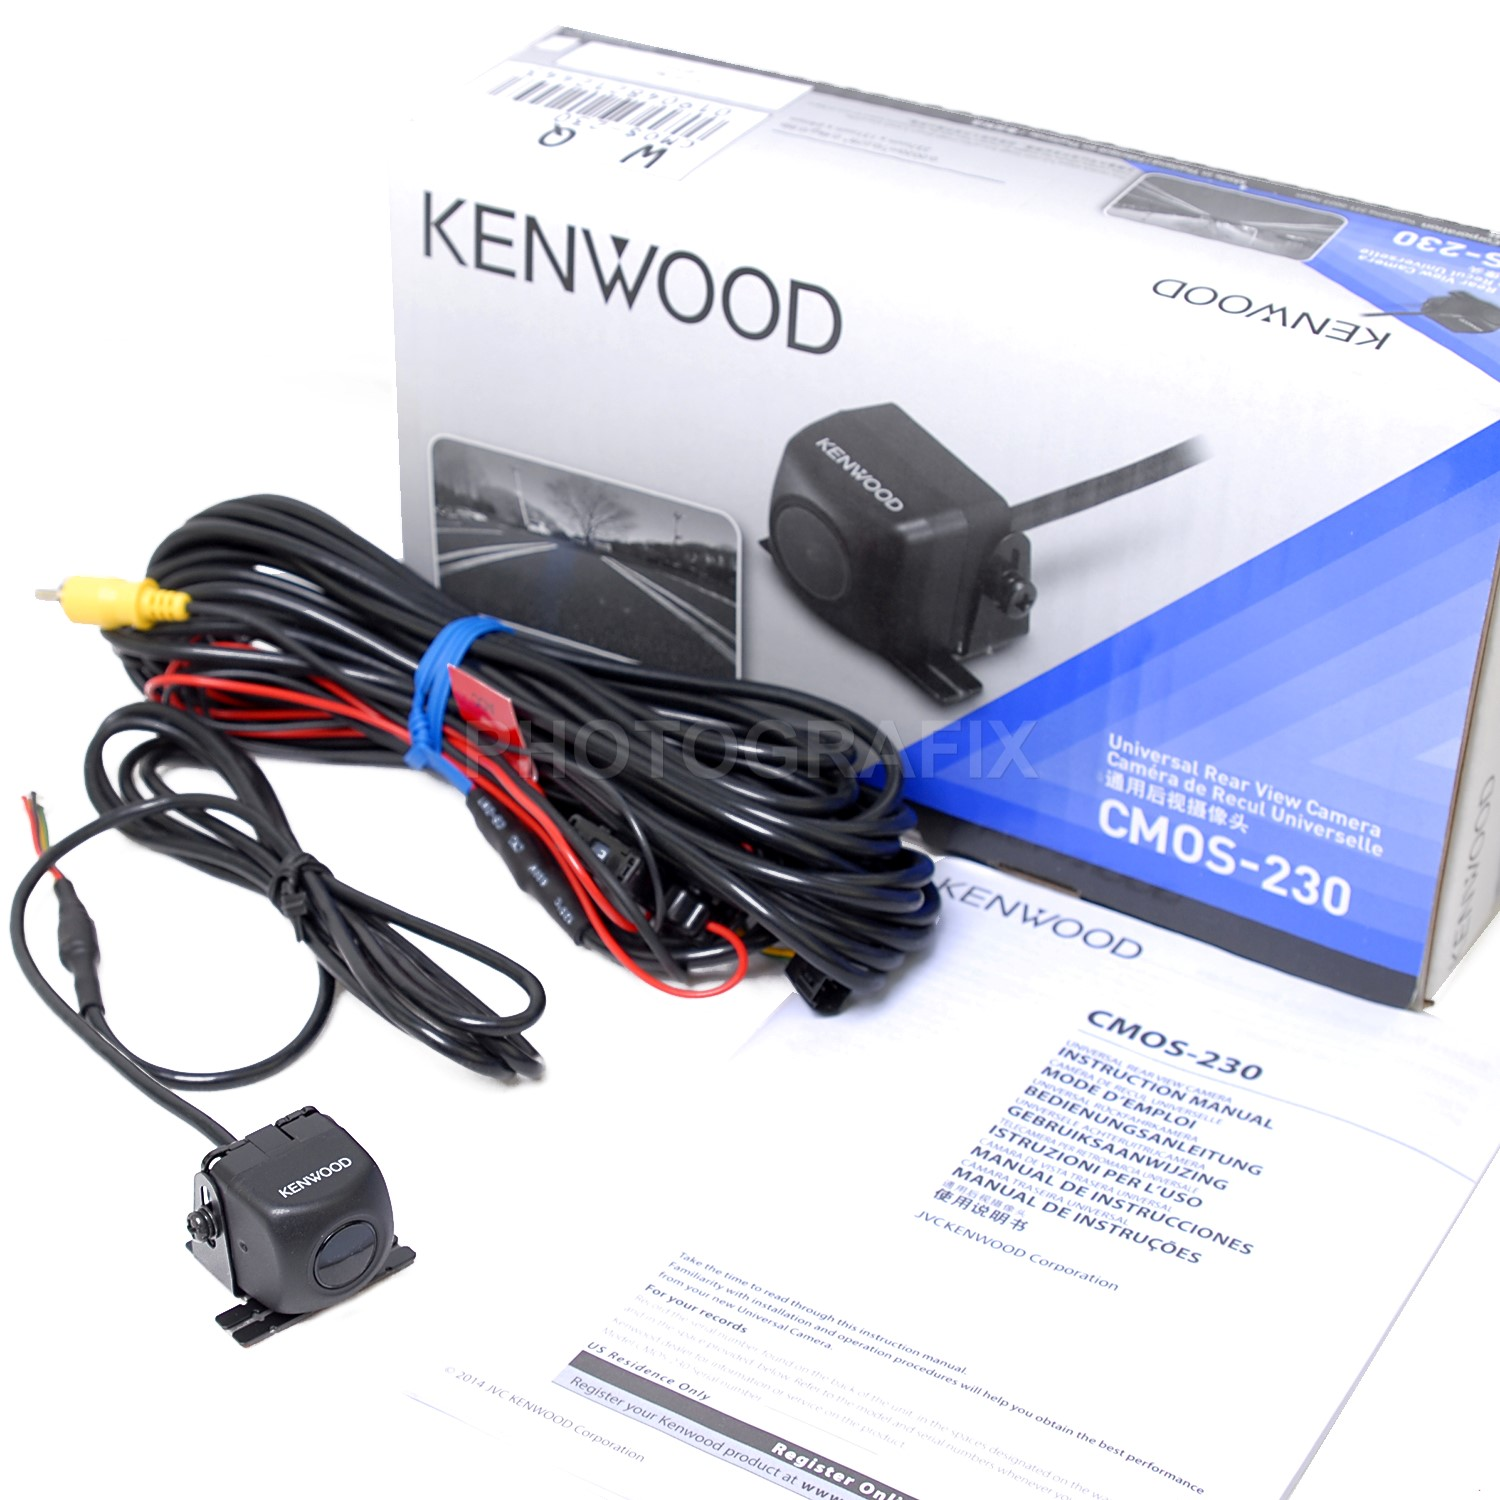 kenwood cmos 230 wide angle rear view backup camera w